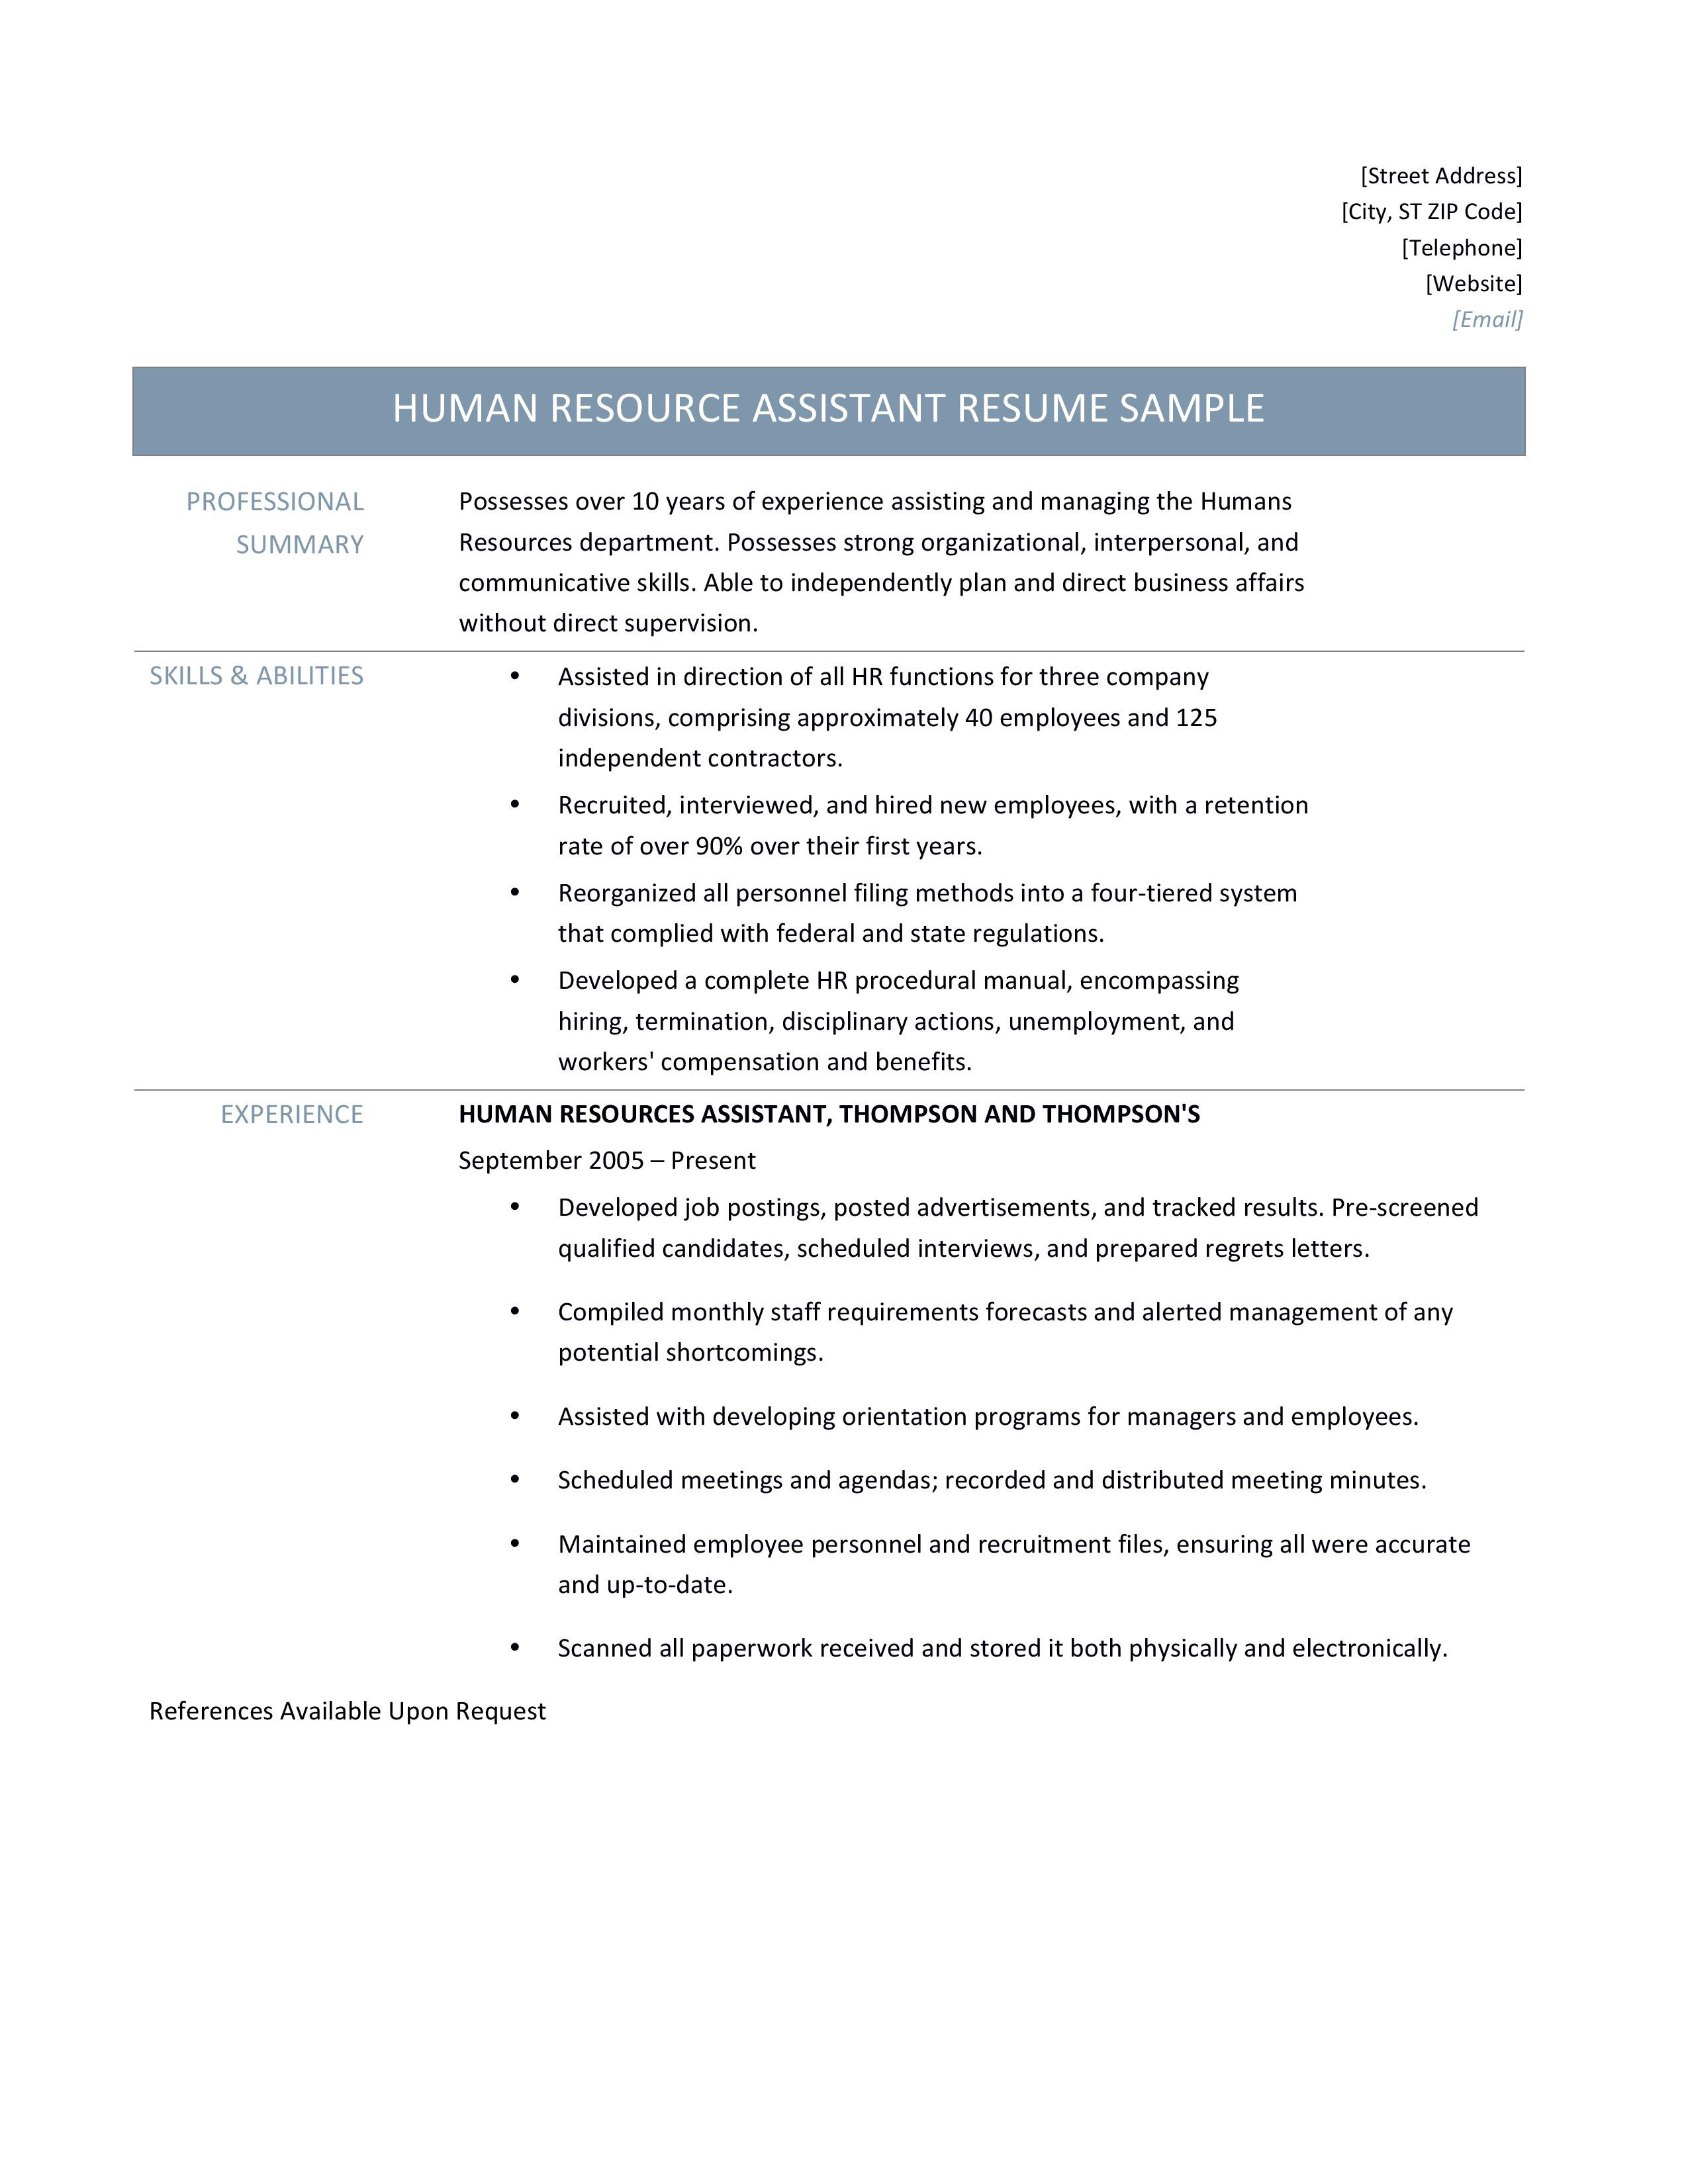 Human Resources Manager Resume Samples Tips And Templates By Online Resume Builders Medium